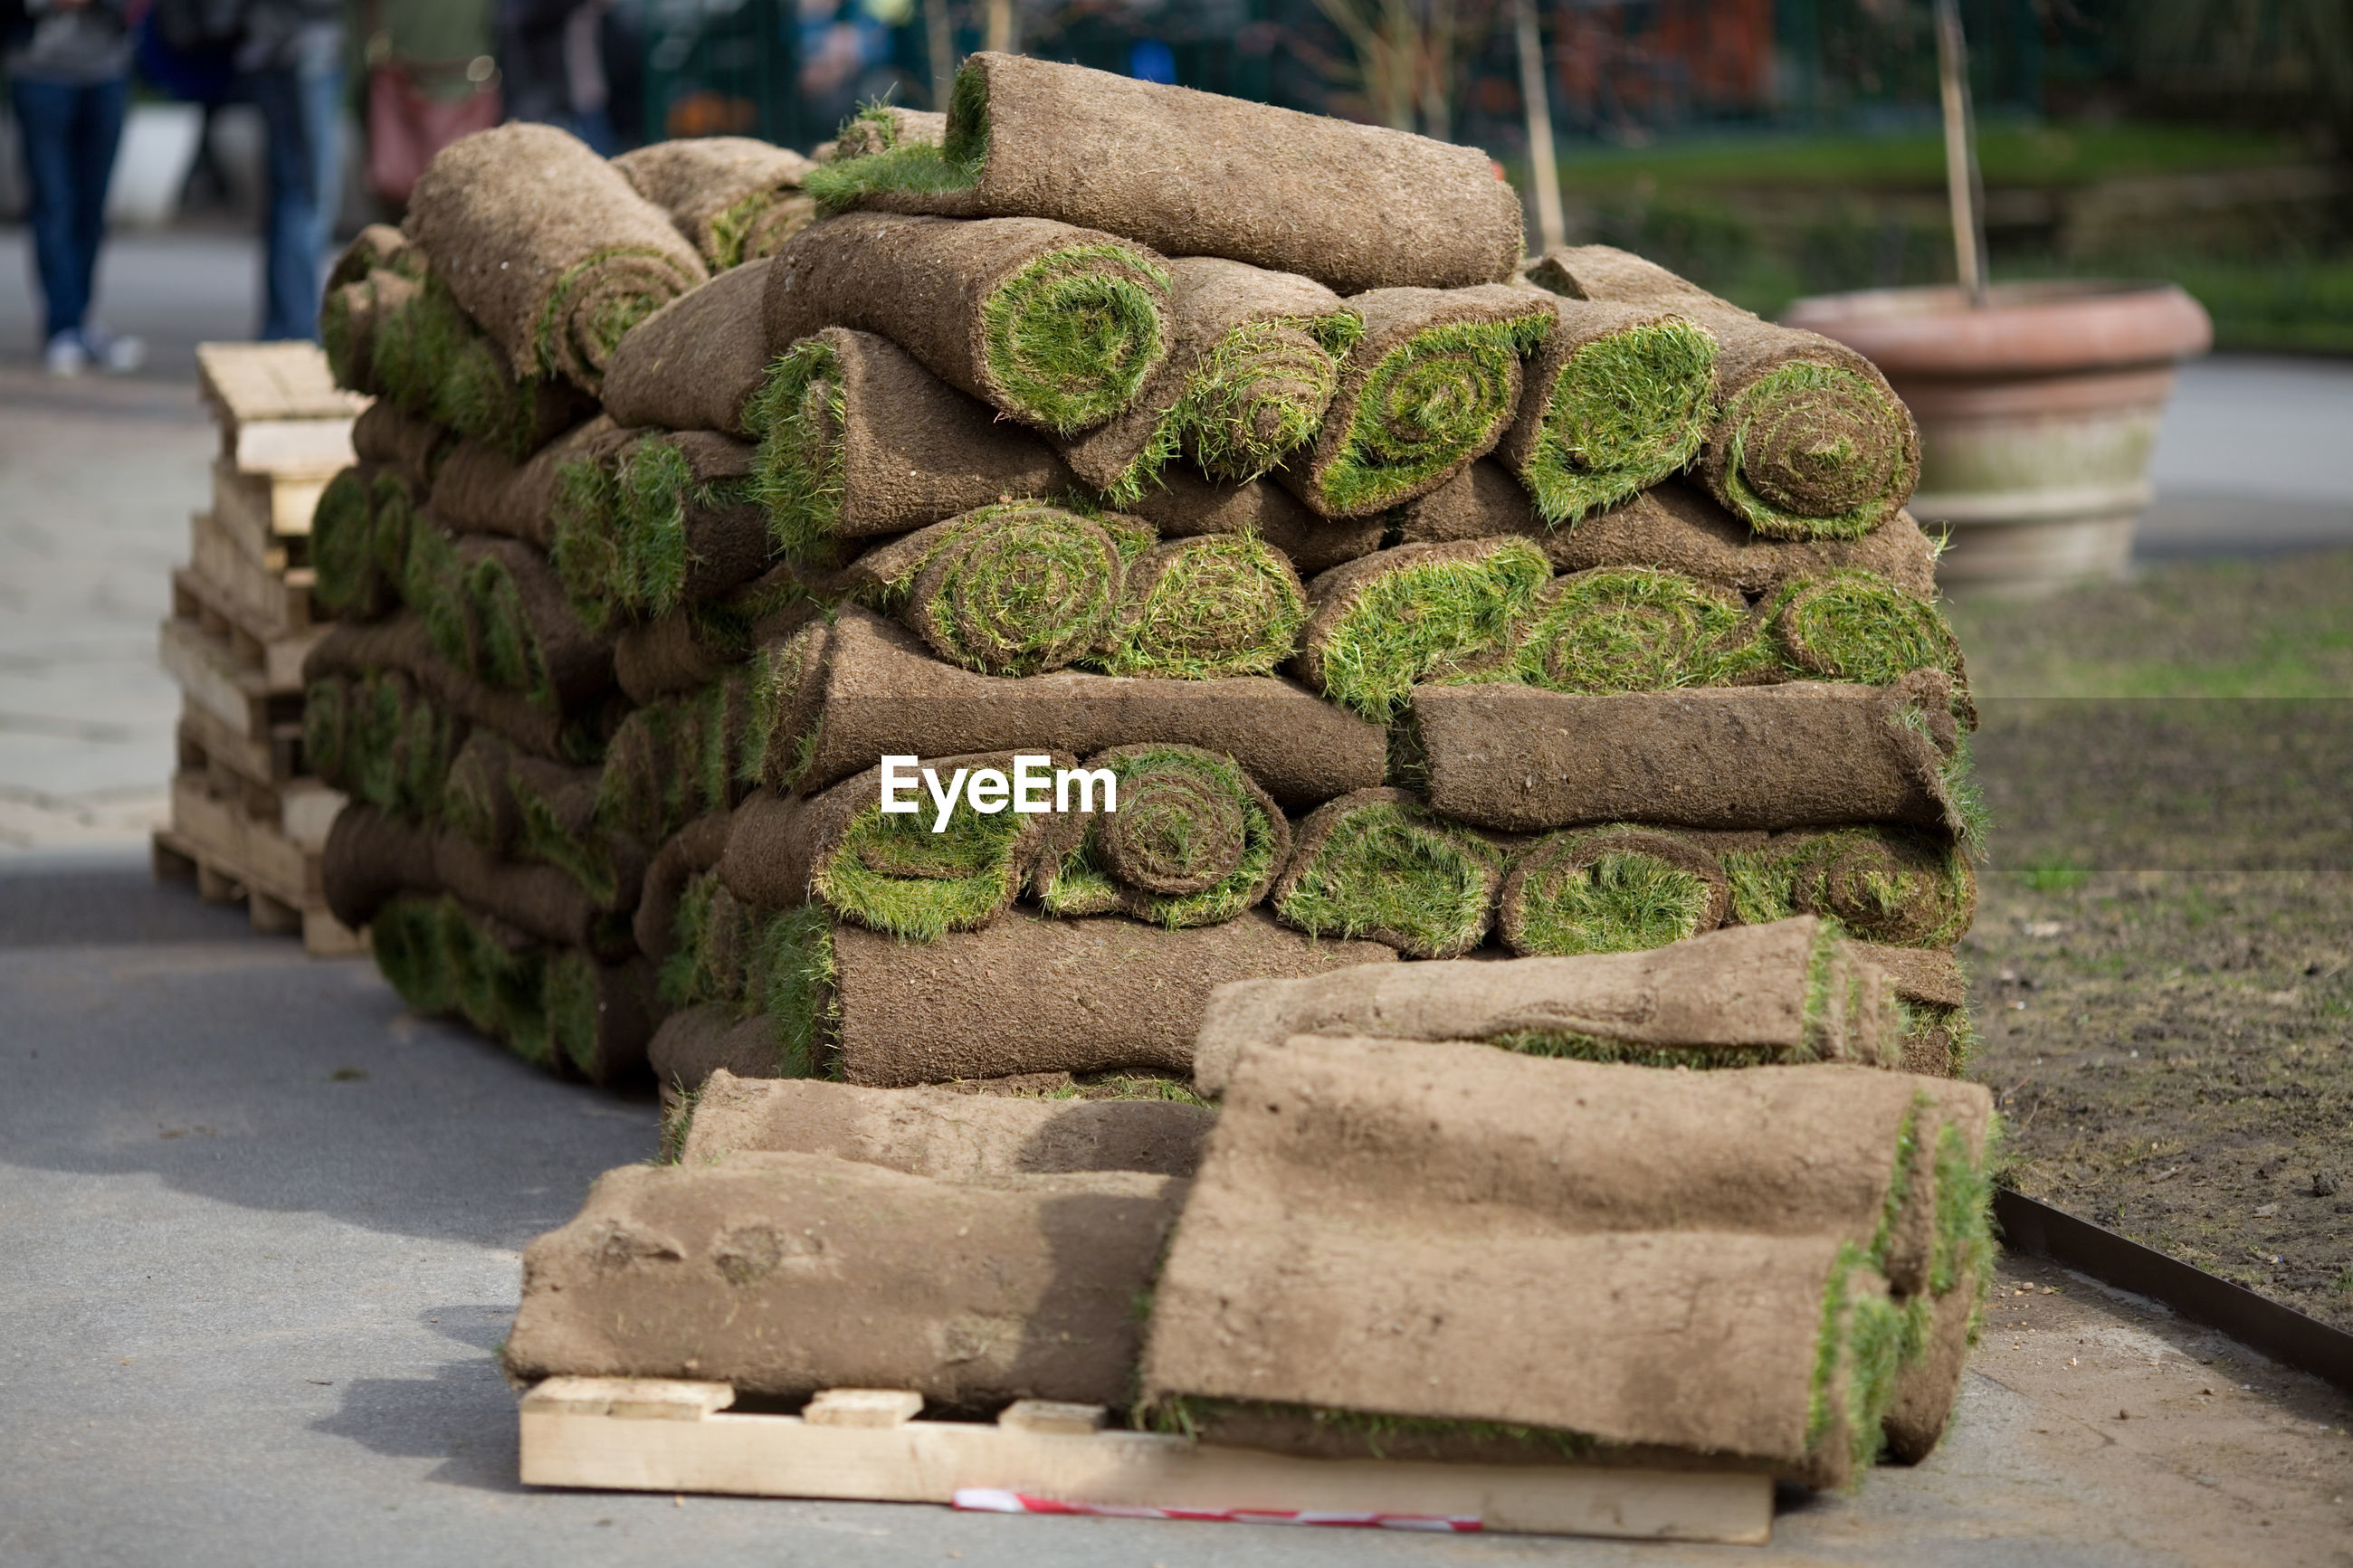 Stacked rolled turfs on footpath